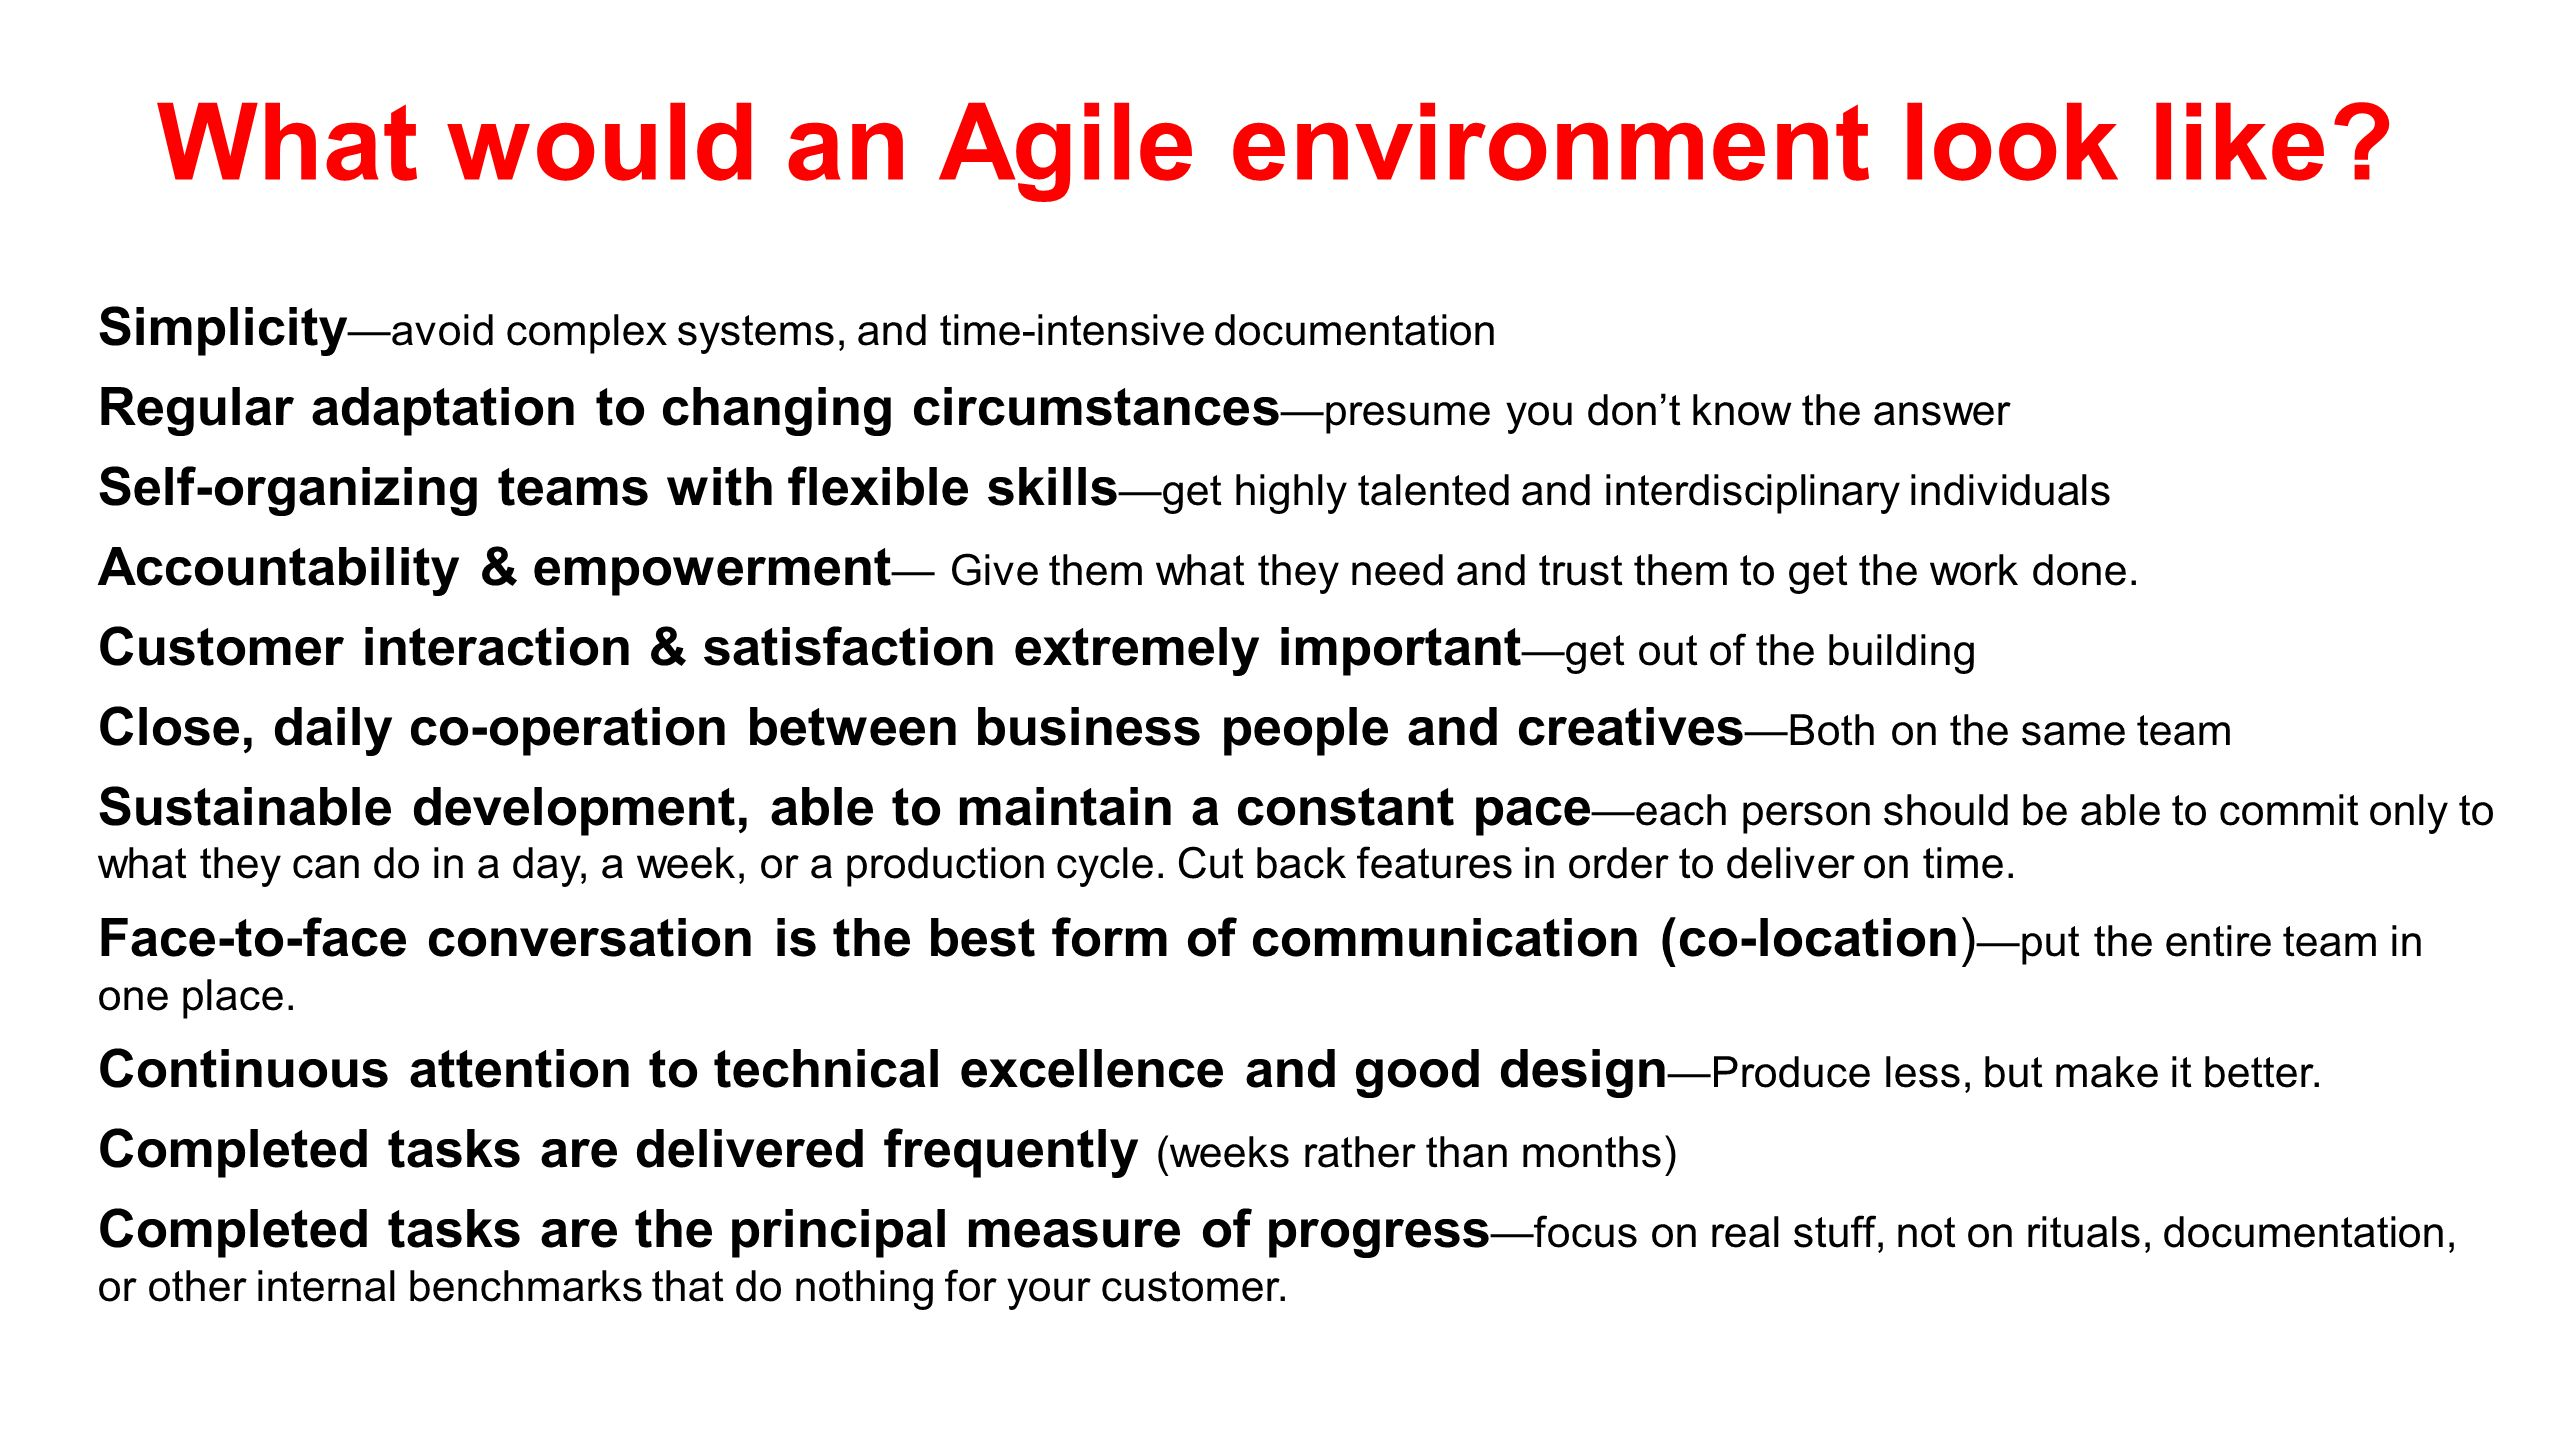 What would an Agile environment look like.